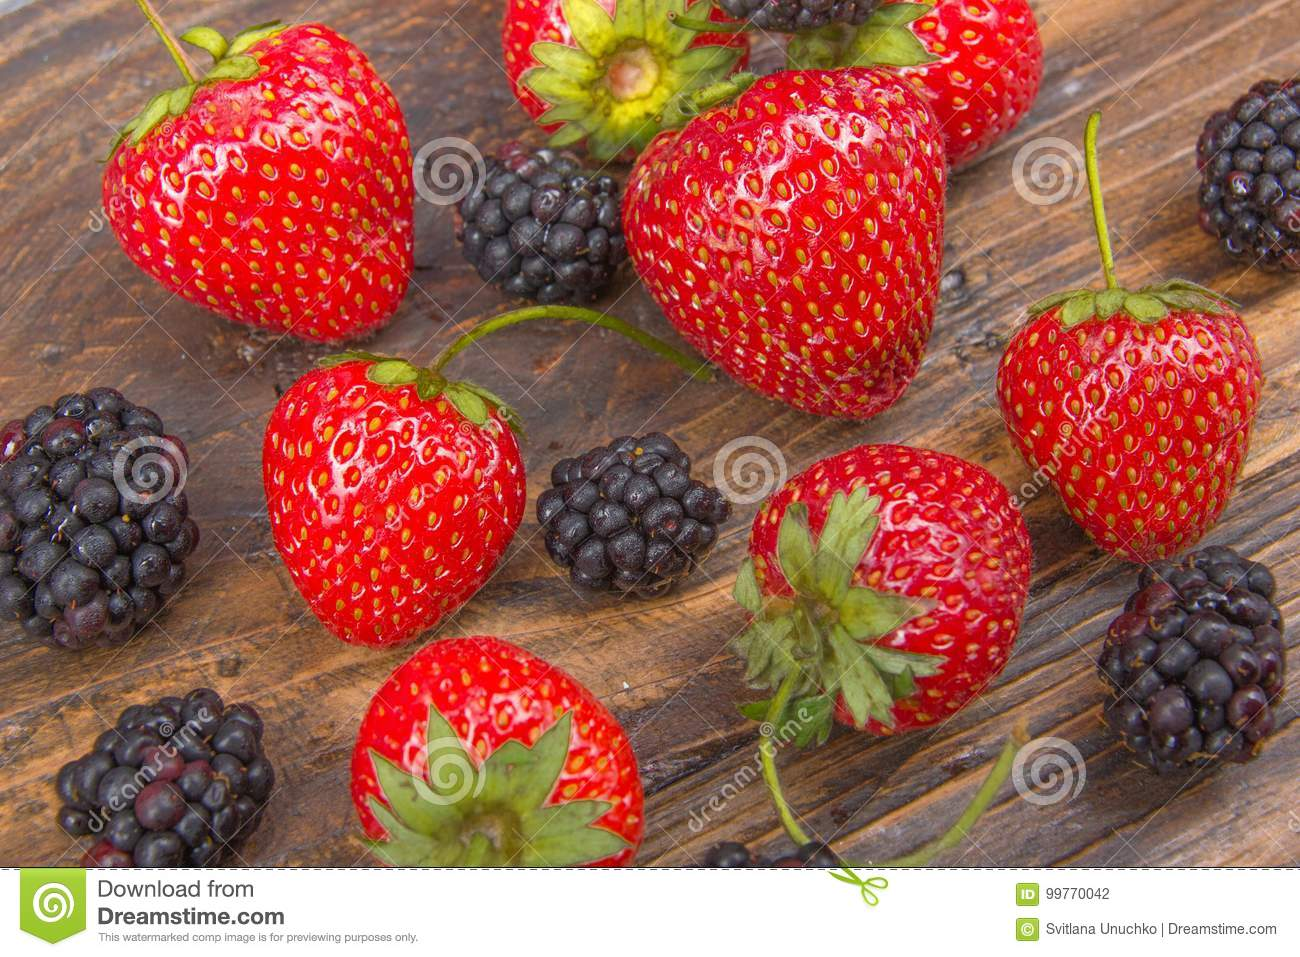 Blackberries Strawberrieson Wooden Table Background Spilled From A Spice Jar Antioxidants Detox Diet Organic Fruits